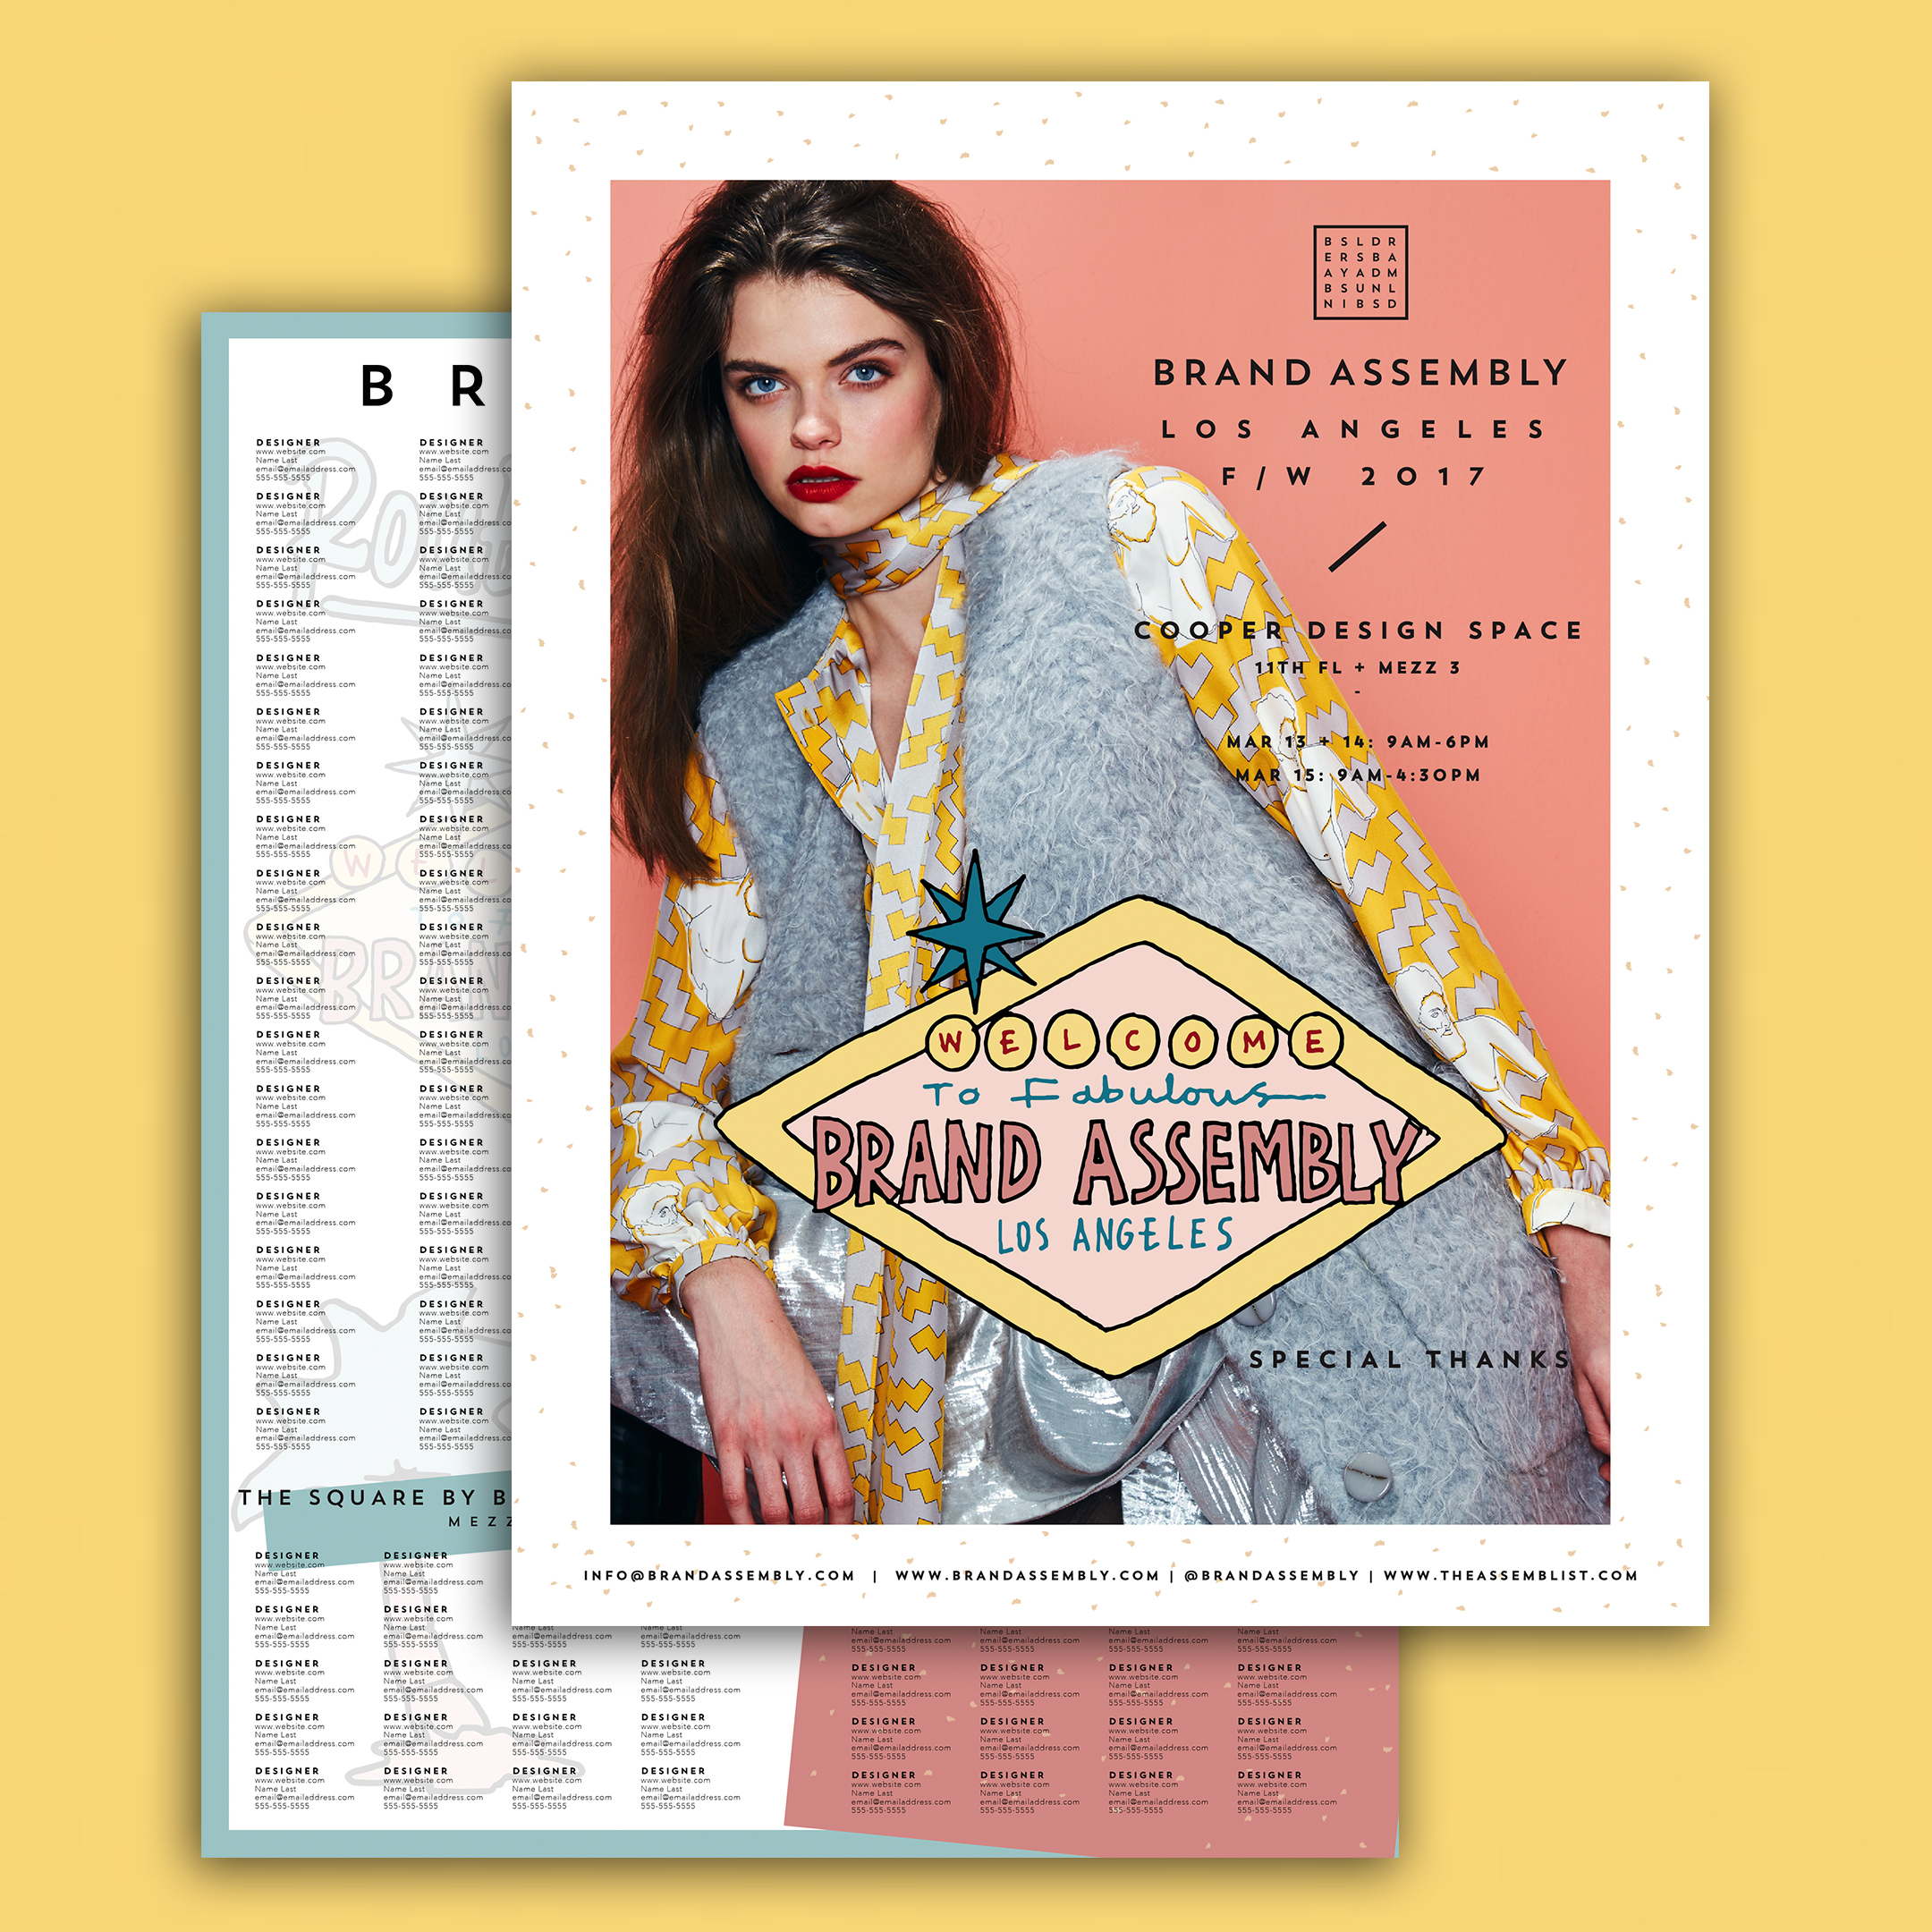 BRAND ASSEMBLY SHOW GUIDE + POSTER